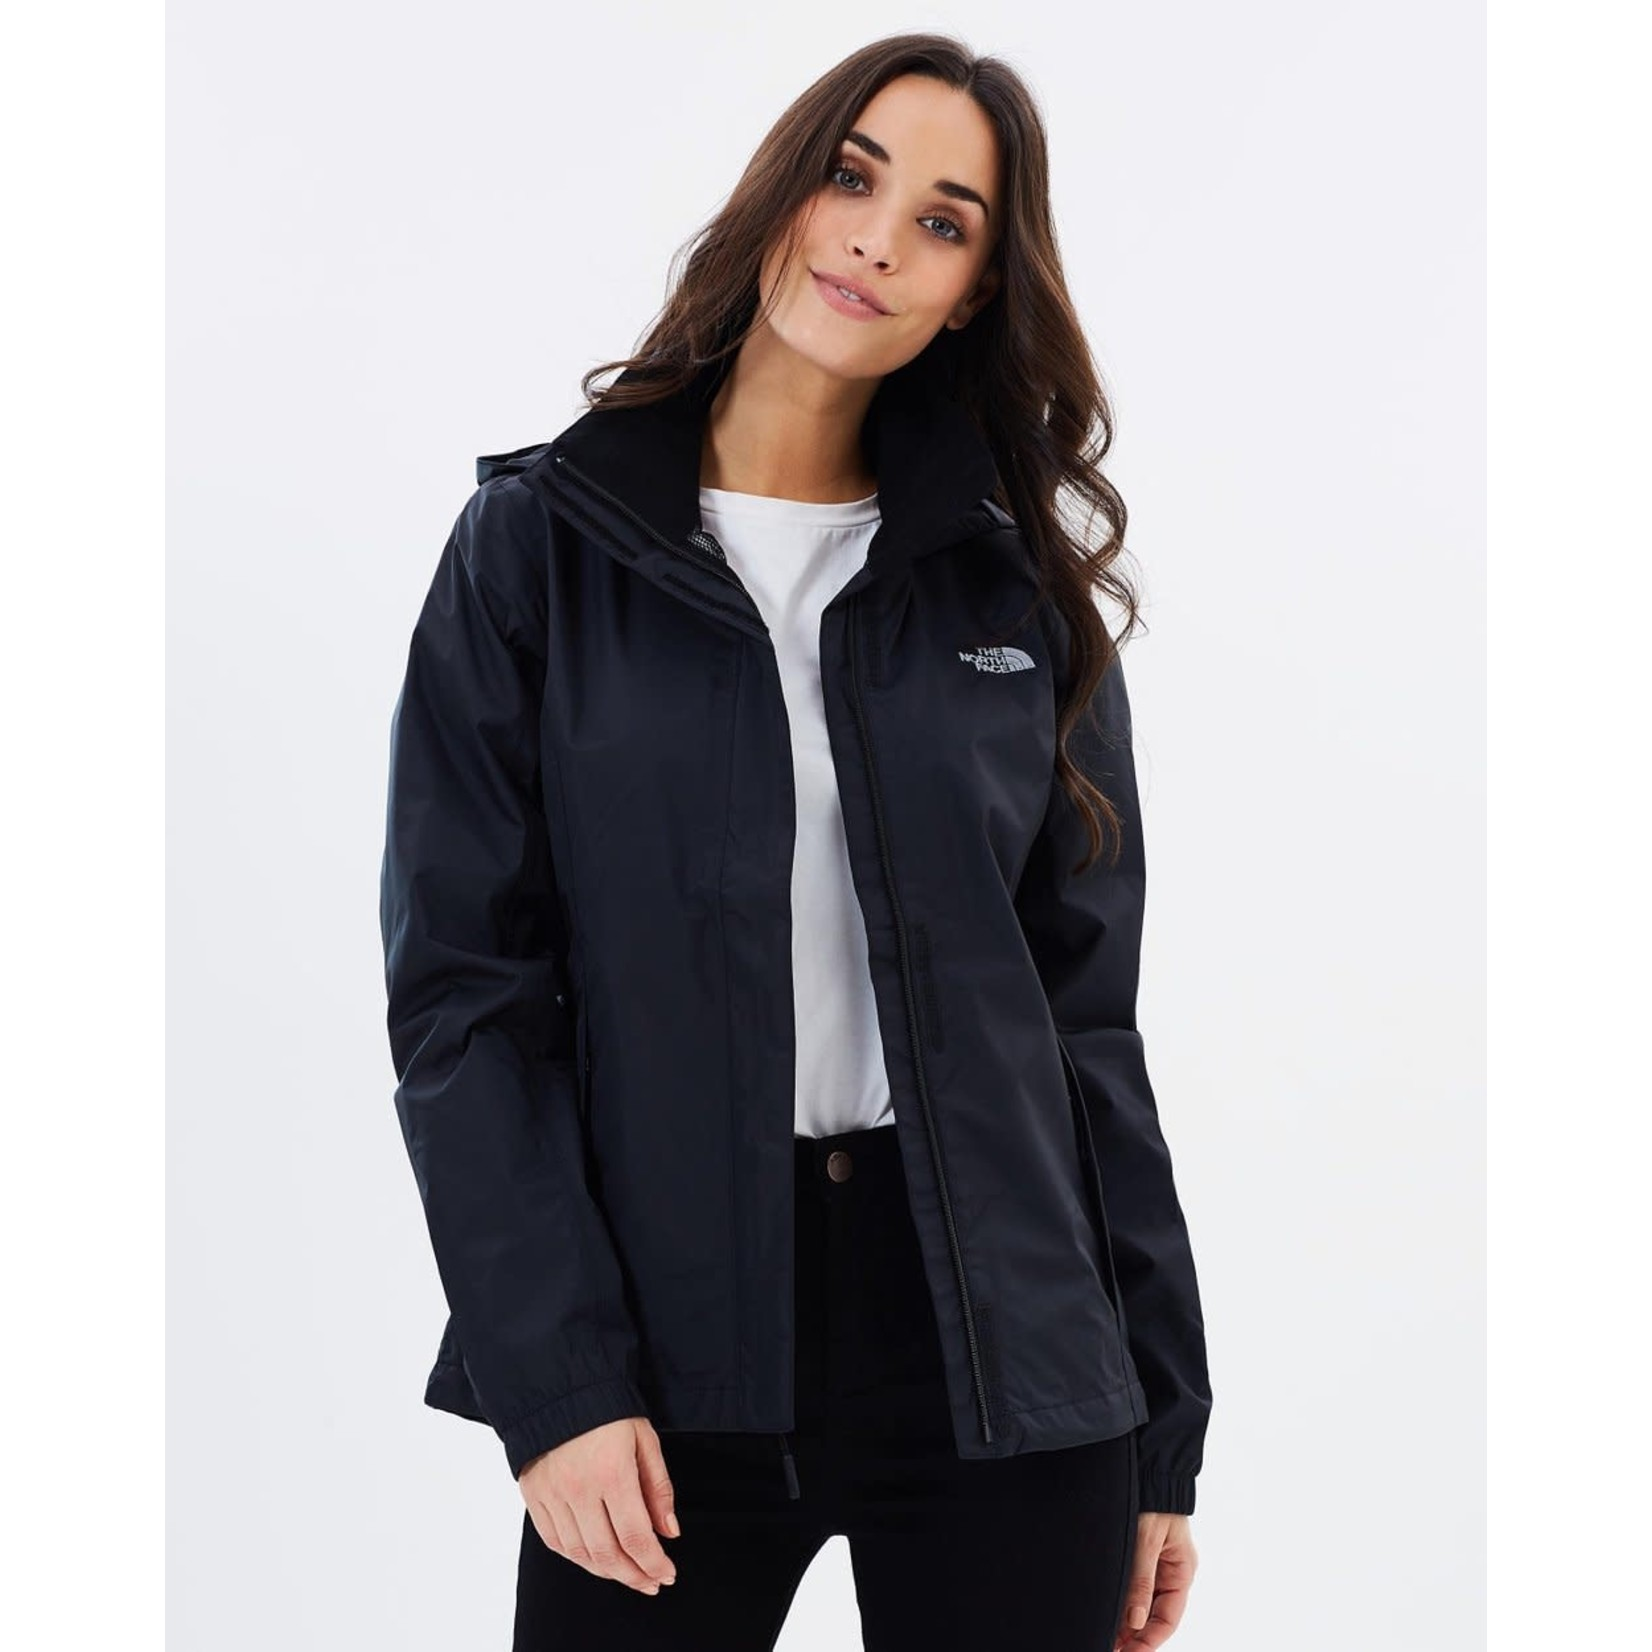 The North Face The North Face Jacket, Resolve 2, Ladies